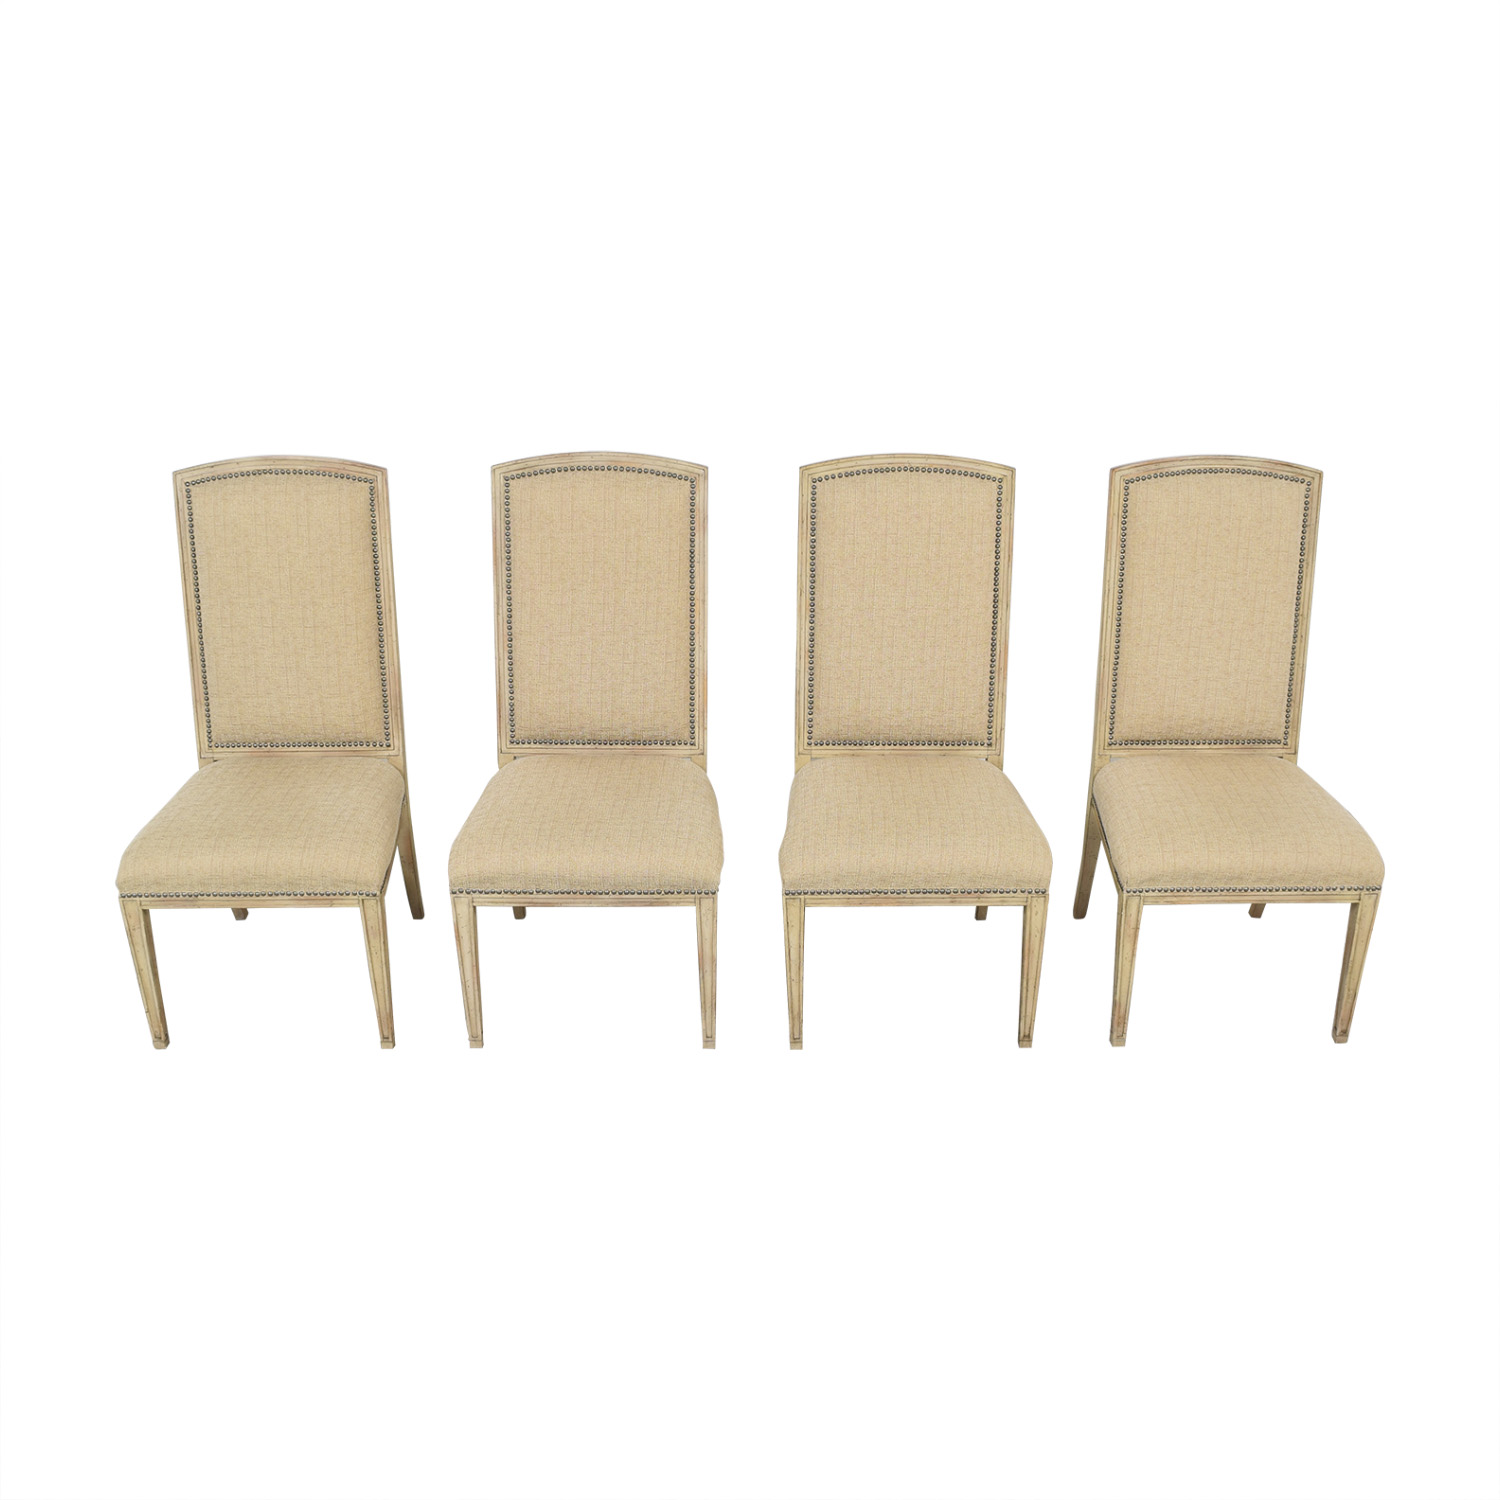 Hooker Furniture Hooker Furniture Sanctuary Dining Chairs used